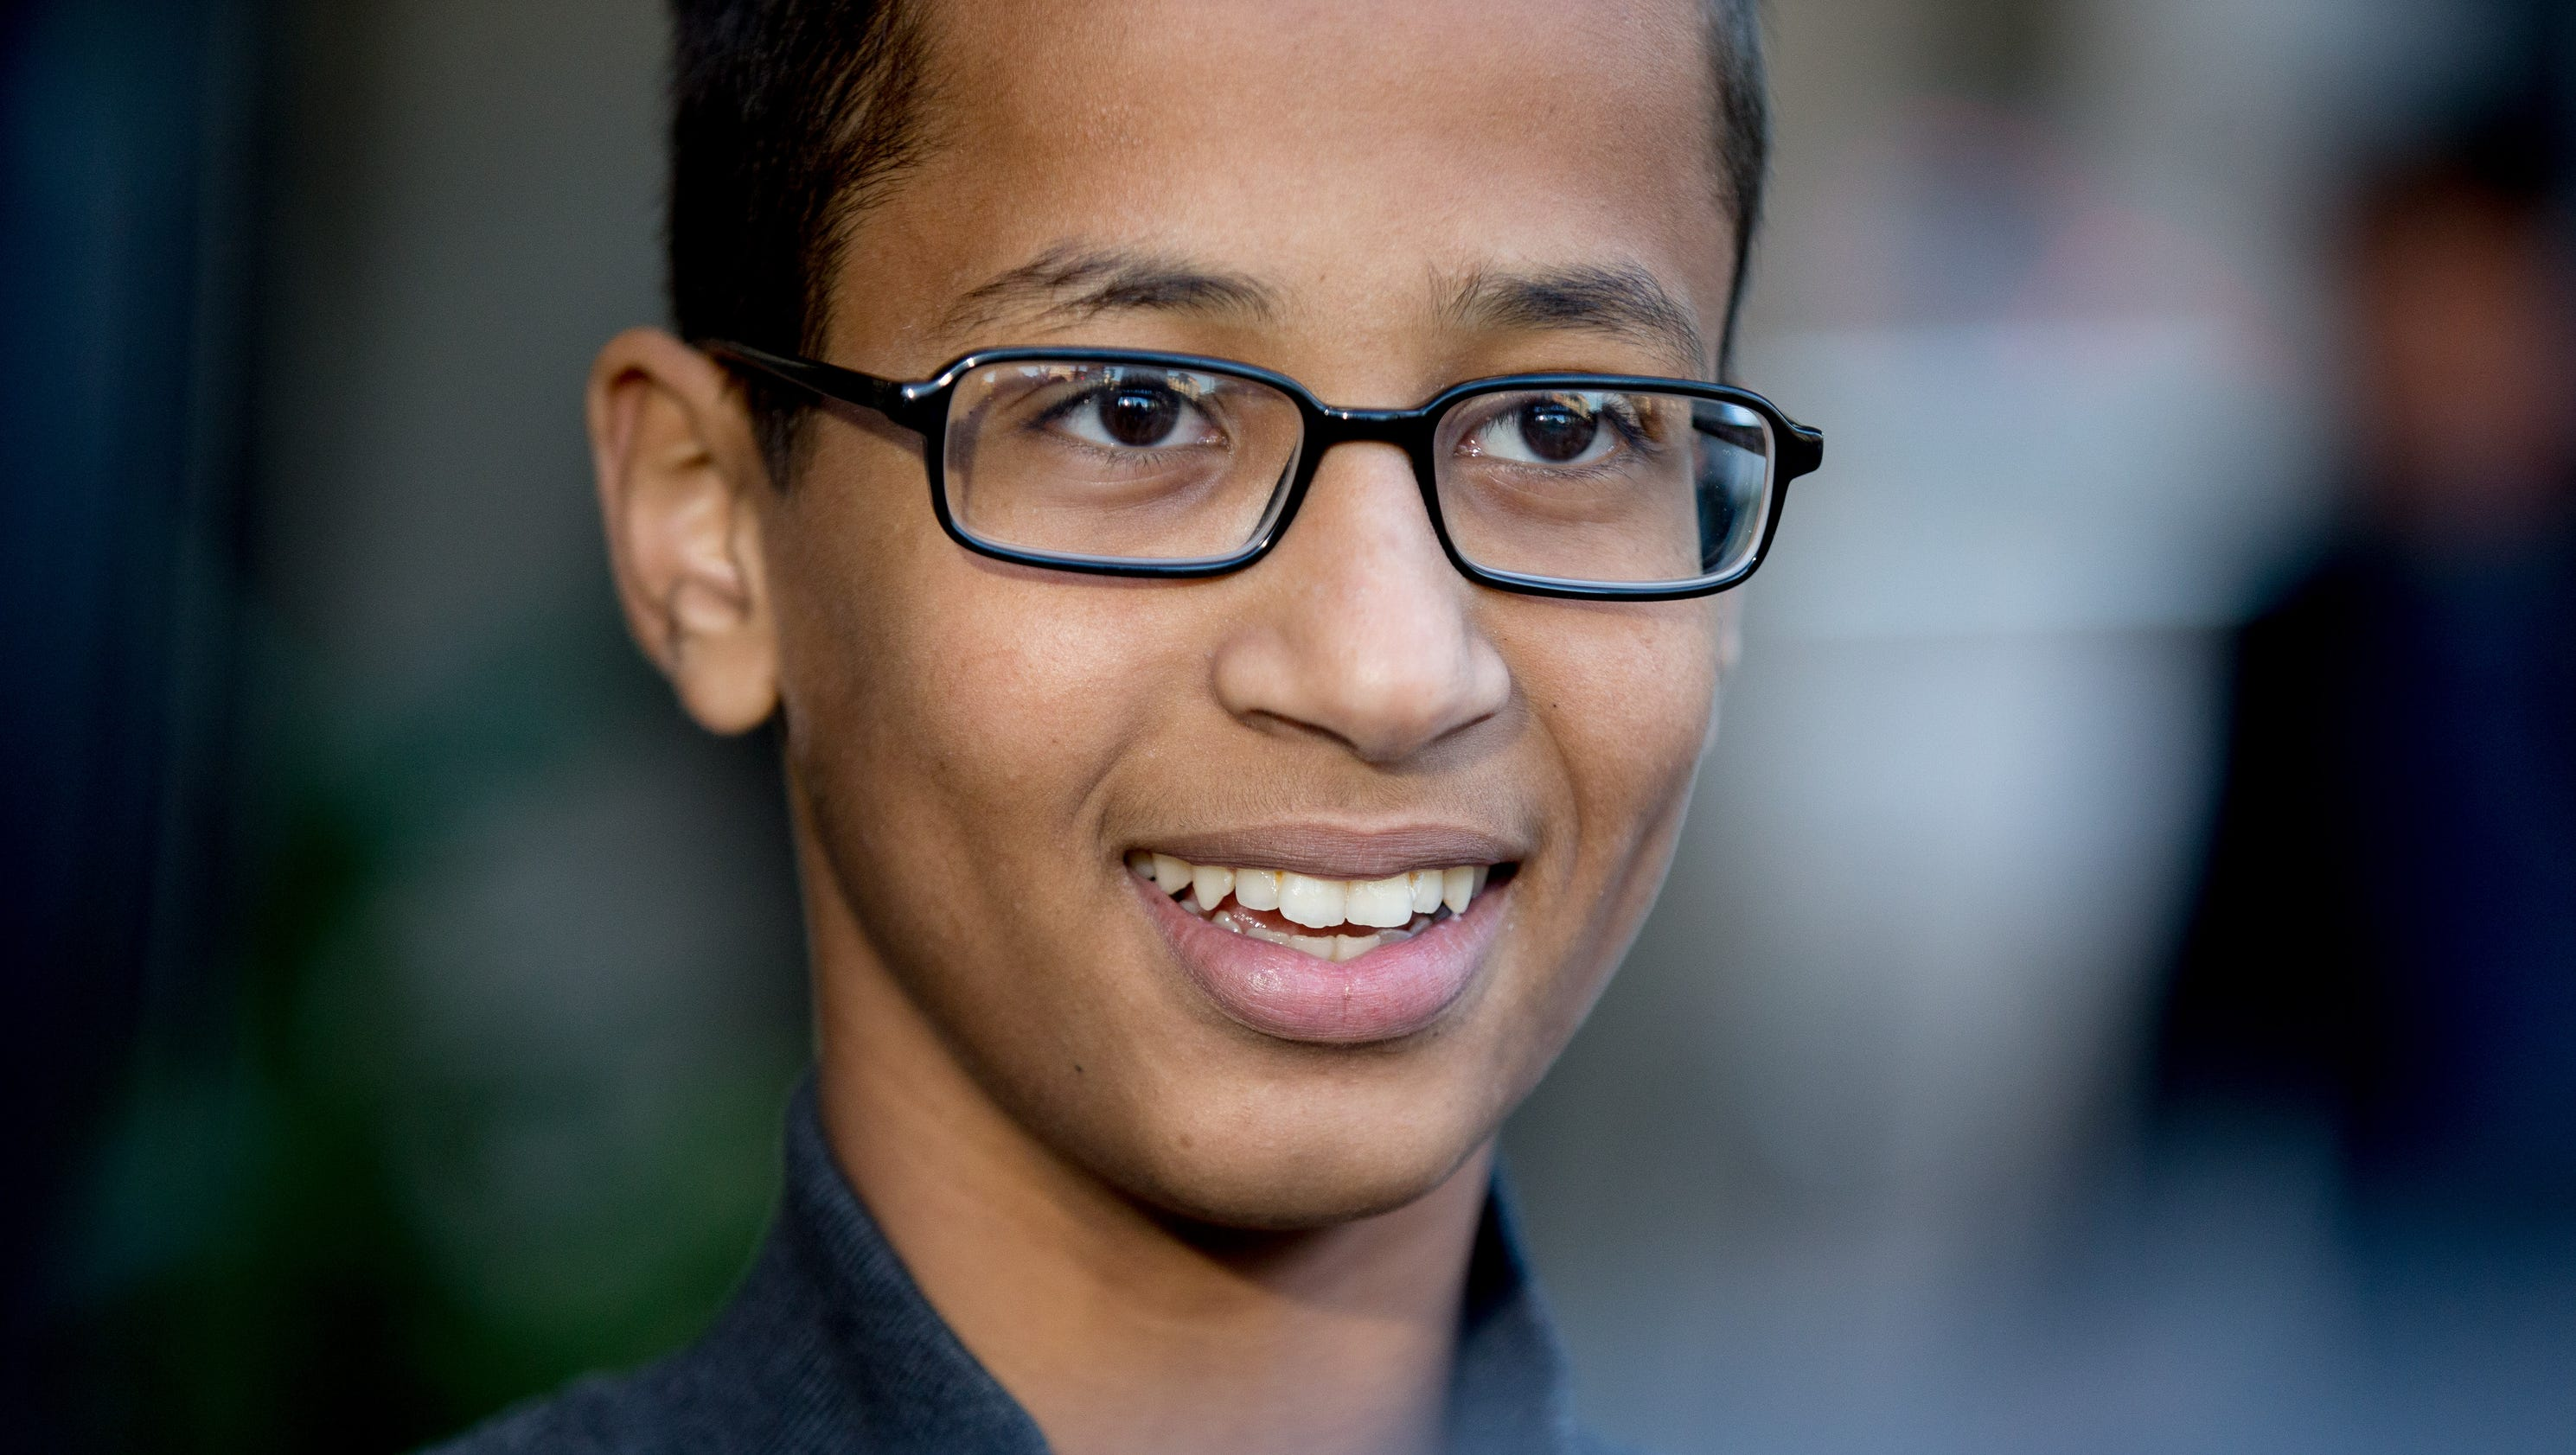 the social impact of the arrest of ahmed mohamed The family of a muslim teenager arrested after a homemade clock he brought to  his  according to mr mohamed the arrest of the 14-year-old had a harmful effect   ahmed mohamed's arrest has been sharply criticised, and the boy has  received  the sign language lawyer who became a social media star.